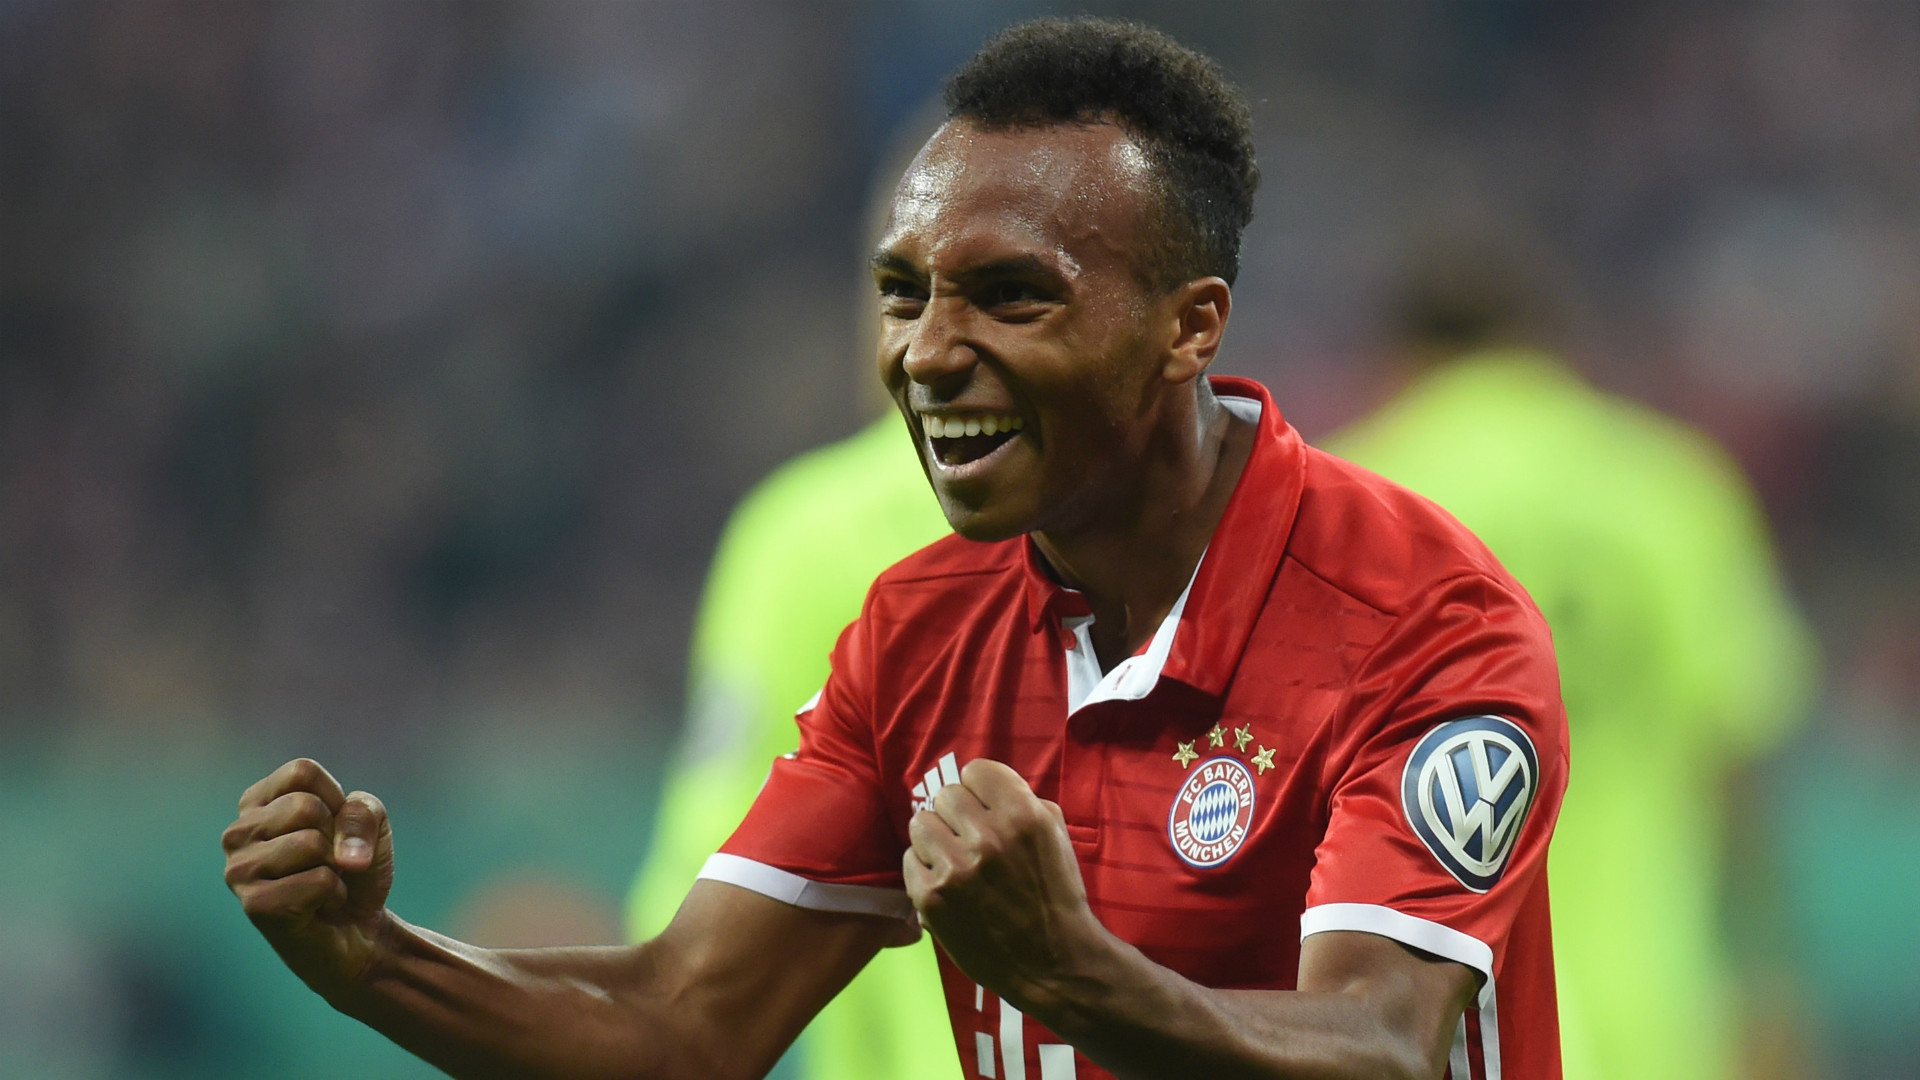 carlo ancelotti hails julian green after move to stuttgart soccer sporting news. Black Bedroom Furniture Sets. Home Design Ideas